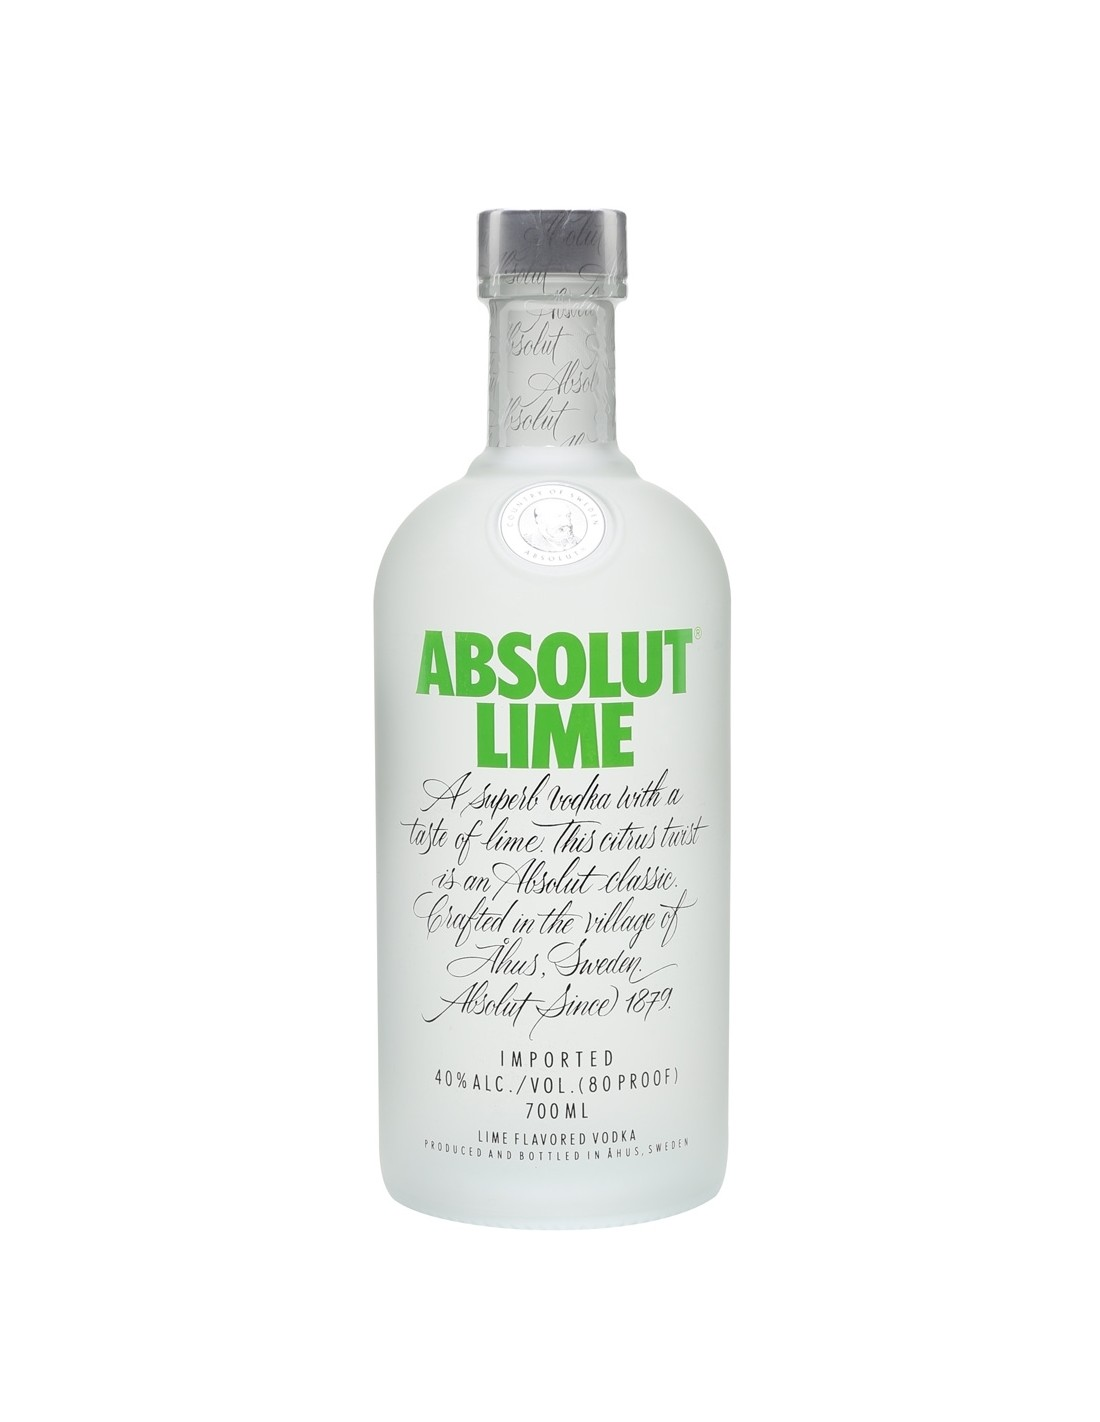 Vodca Absolut Lime 0.7L, 40% alc., Suedia